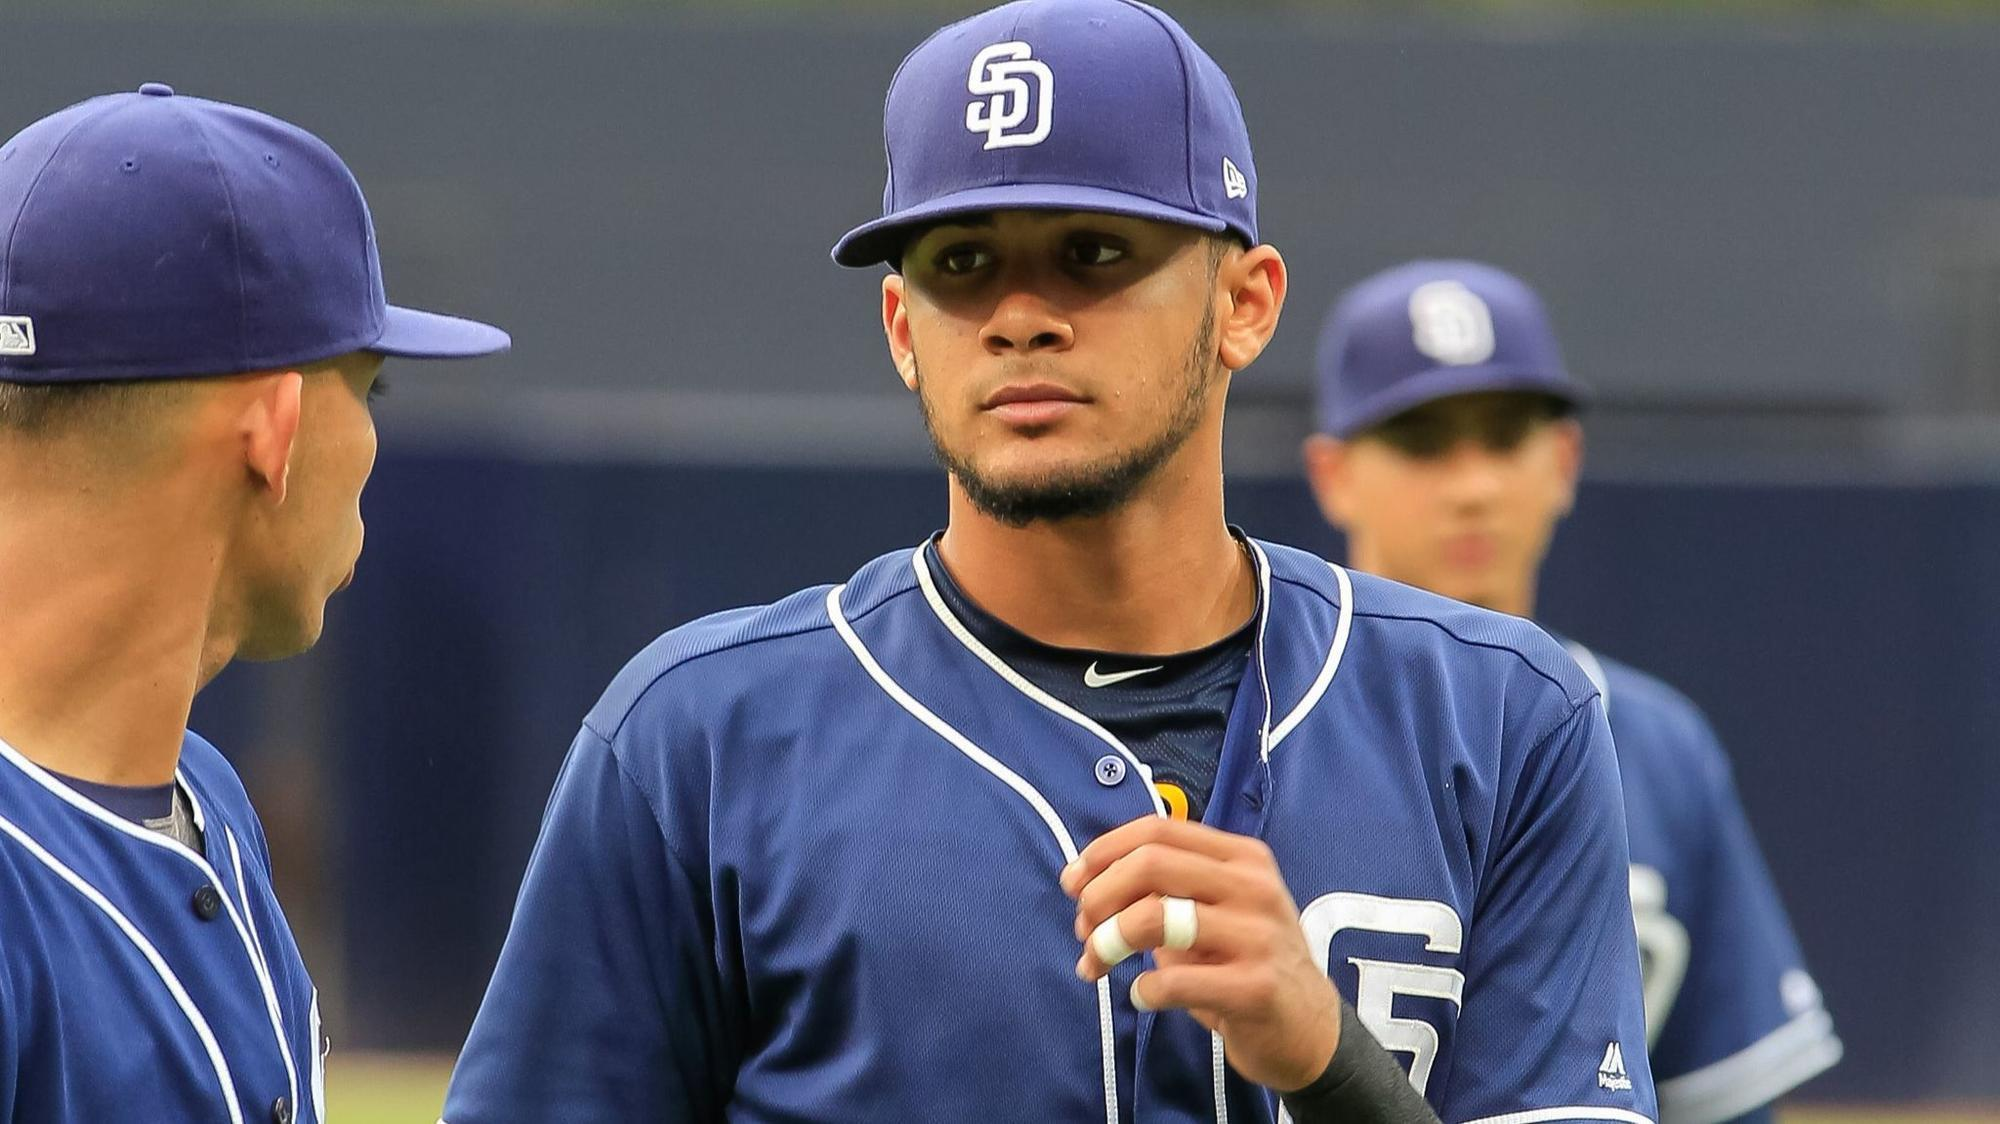 Sd-sp-padres-farm-system-the-deepest-its-been-keith-law-espn-20180124